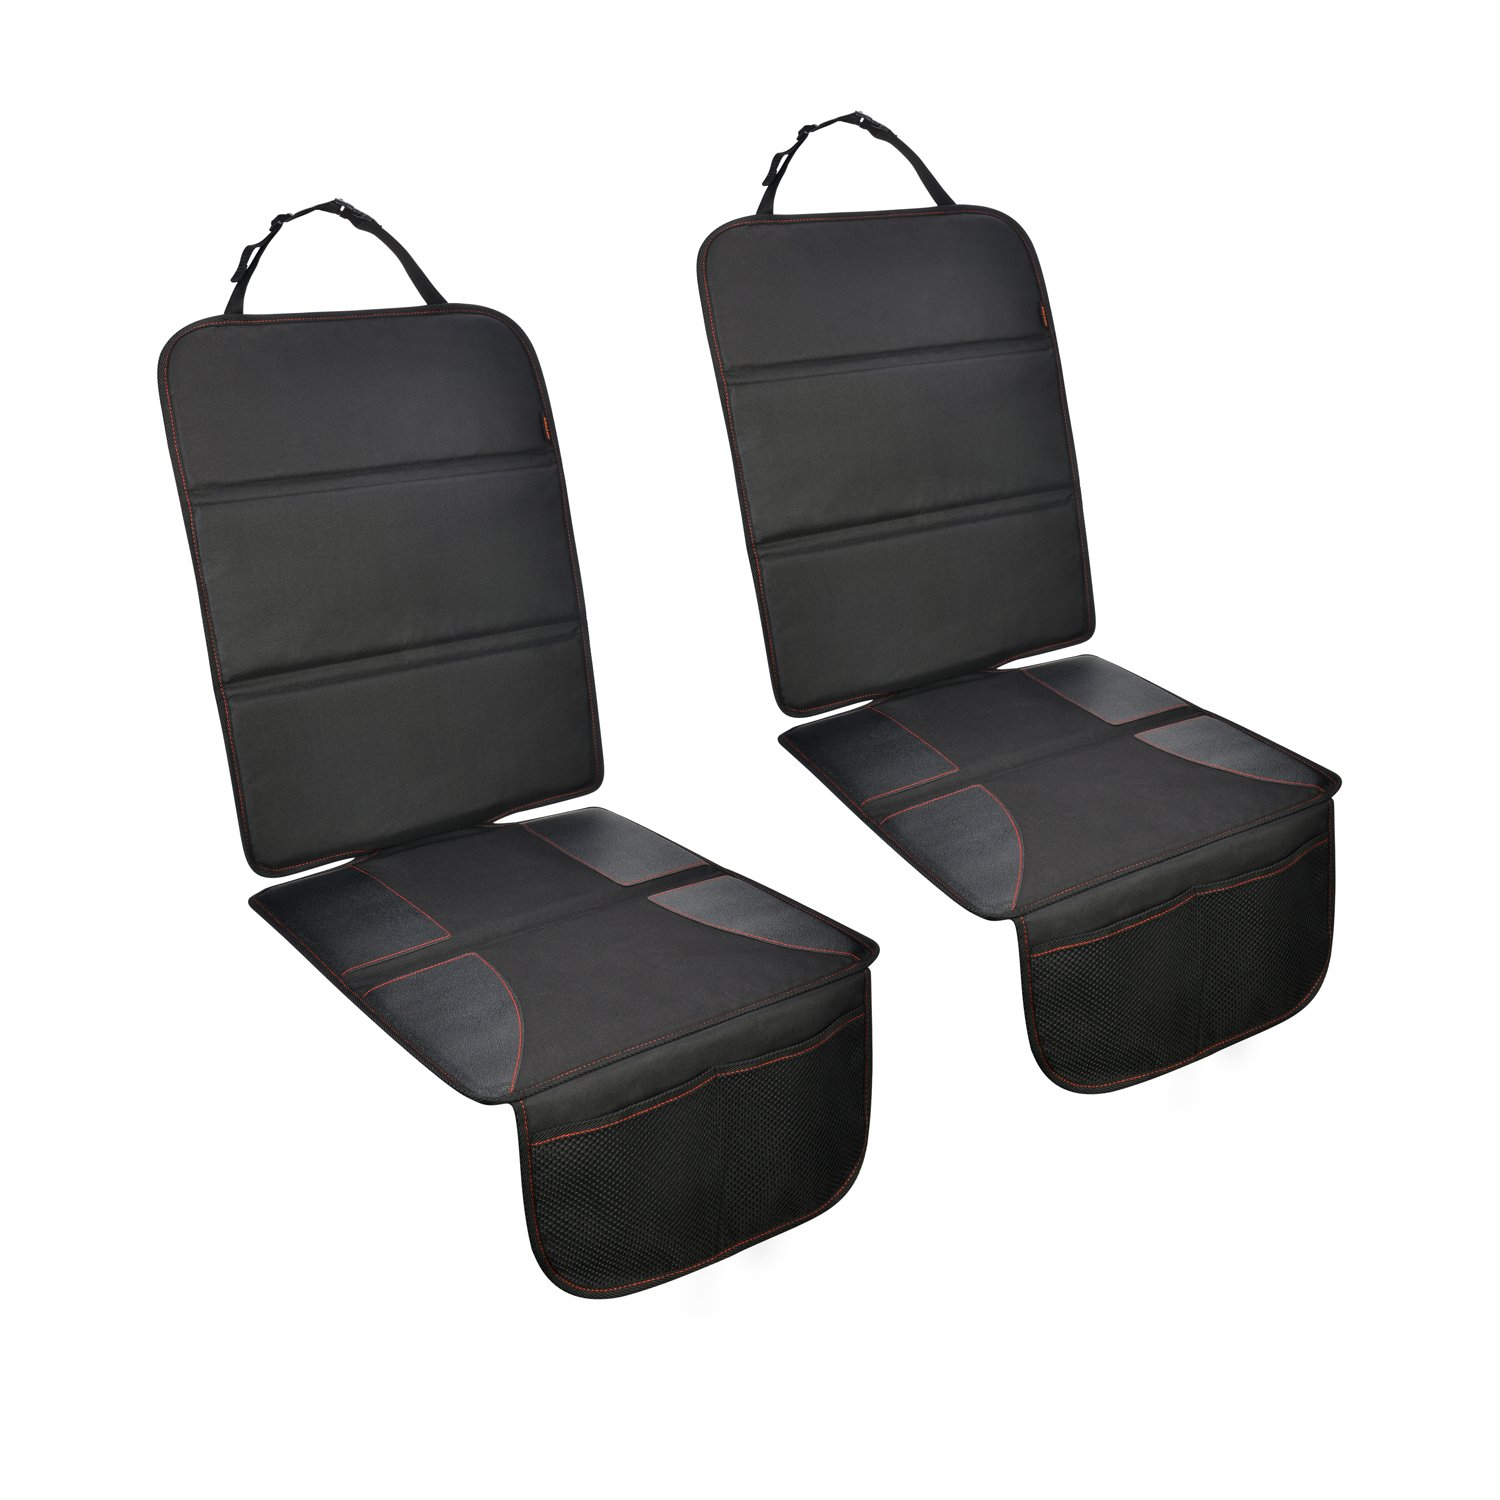 Car Seat Protector 2 Pack for Child Baby Carseat, Thick Padding Auto Seat Mat with Organizer Pockets to Protect Your Leather and Fabric Seats-Durable and Water-Resistant